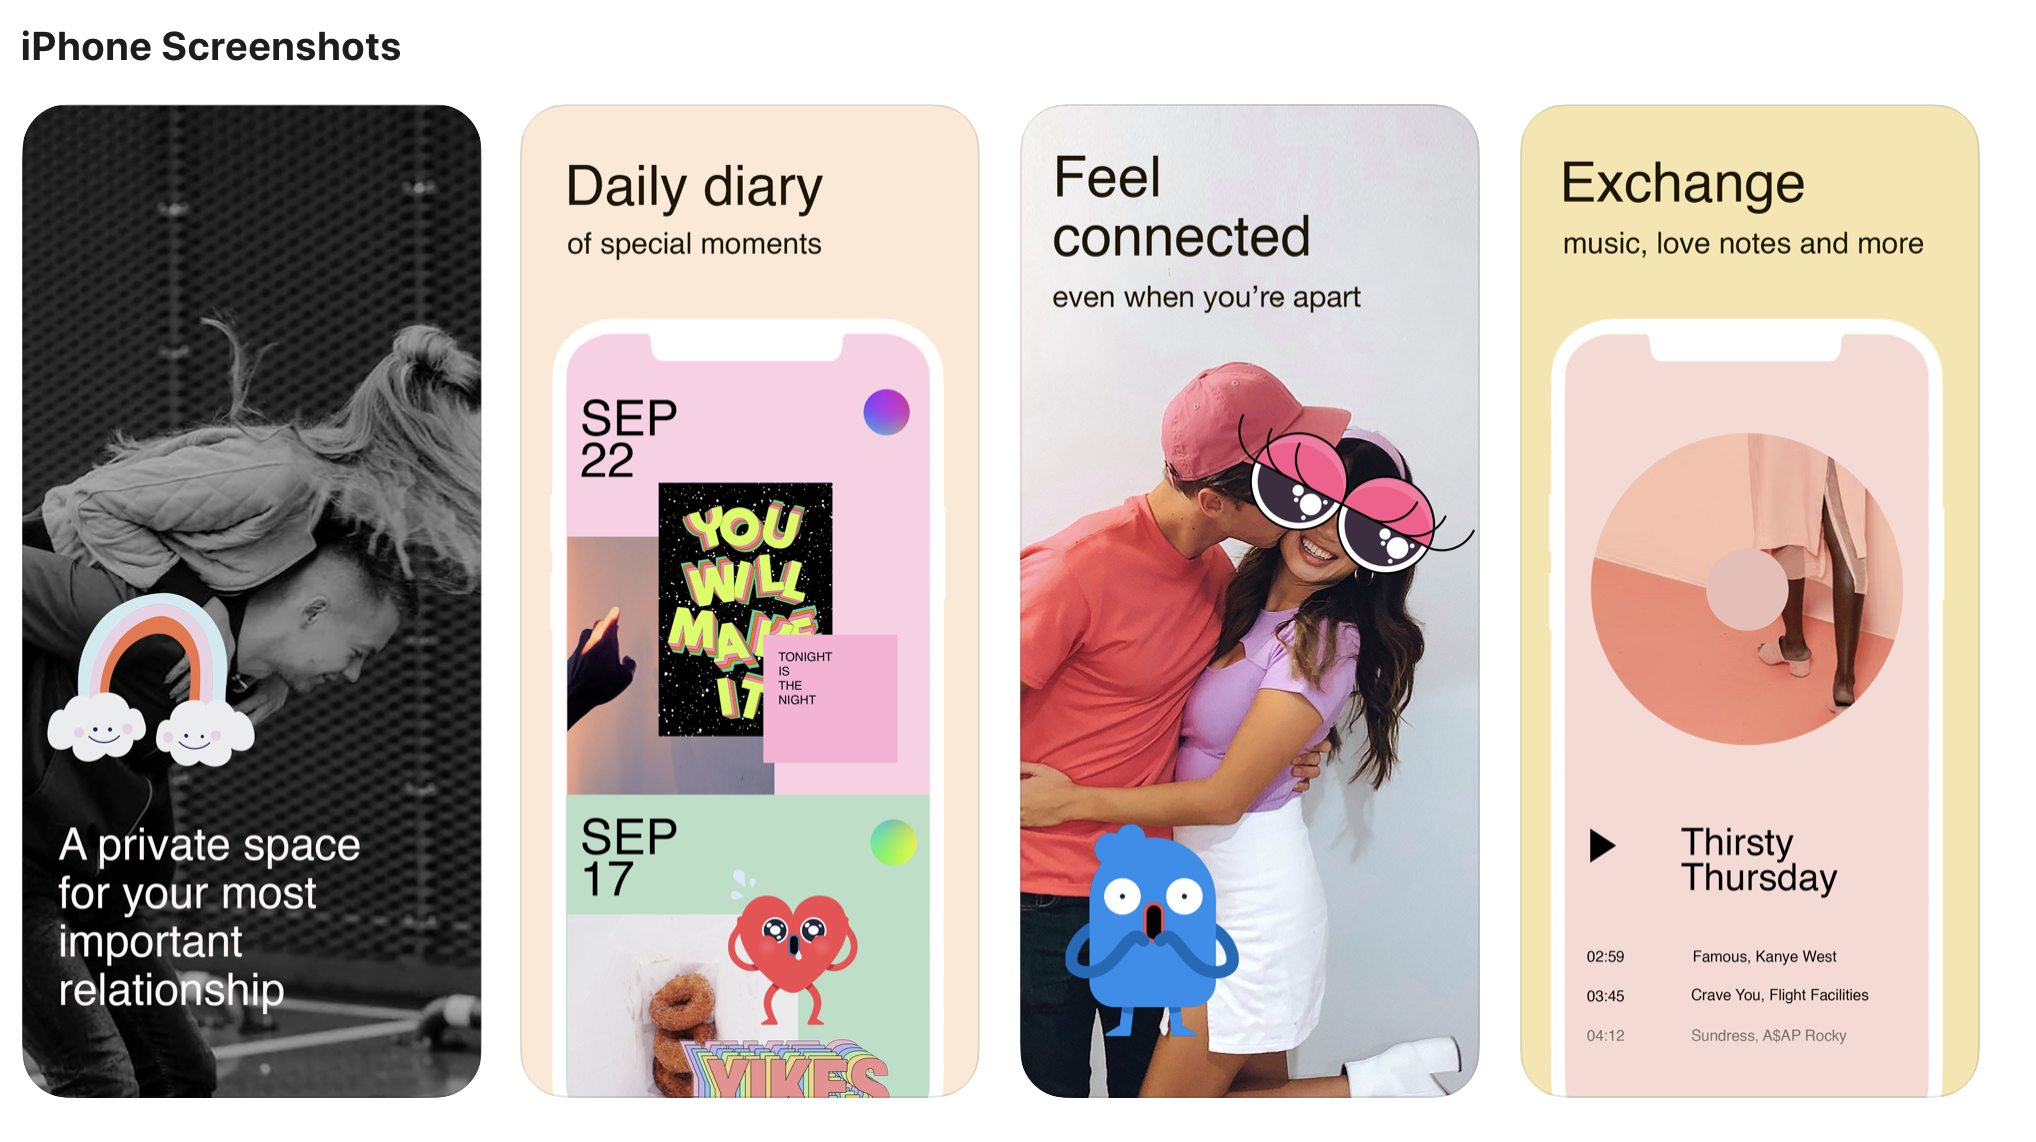 The new app — called Tuned — gives couples a chance to create a social media network between themselves, according to The Information. The couples can share photos, music, memories and moods together on the app without going public to the rest of their followers.